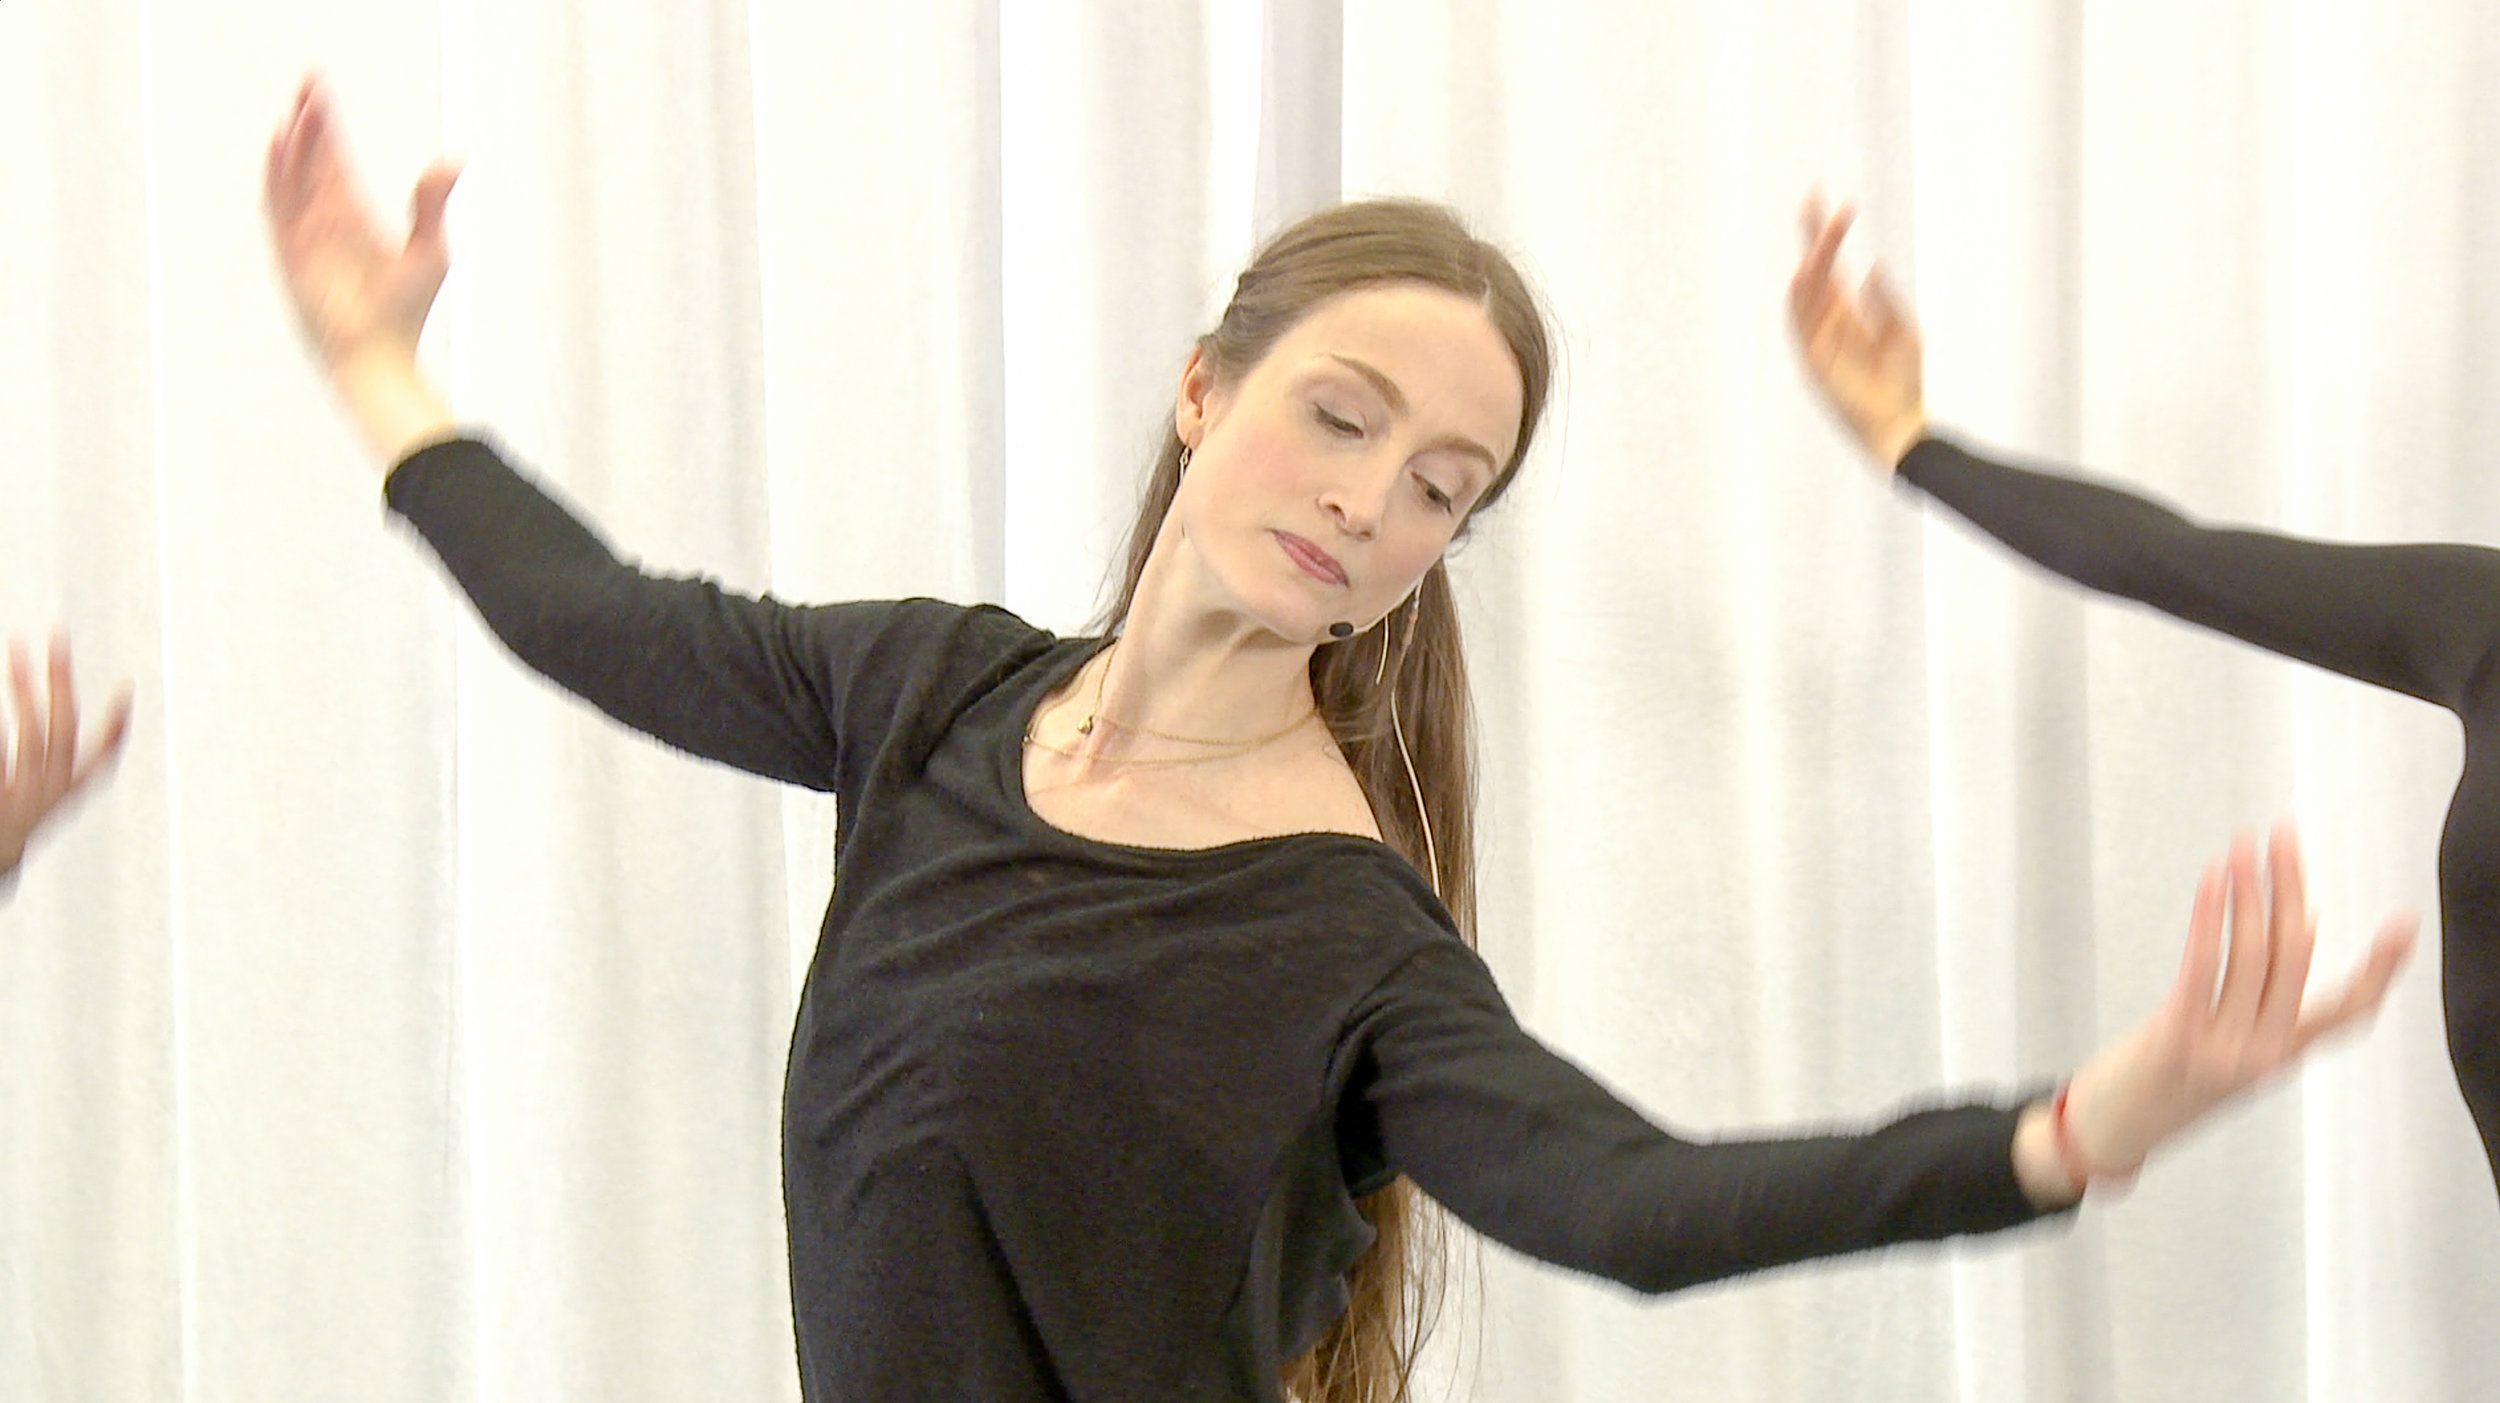 Julie Kent - Julie Kent was a principal dancer with the American Ballet Theatre from 1993 to June 2015. In 2016, she was named the artistic director of The Washington Ballet.